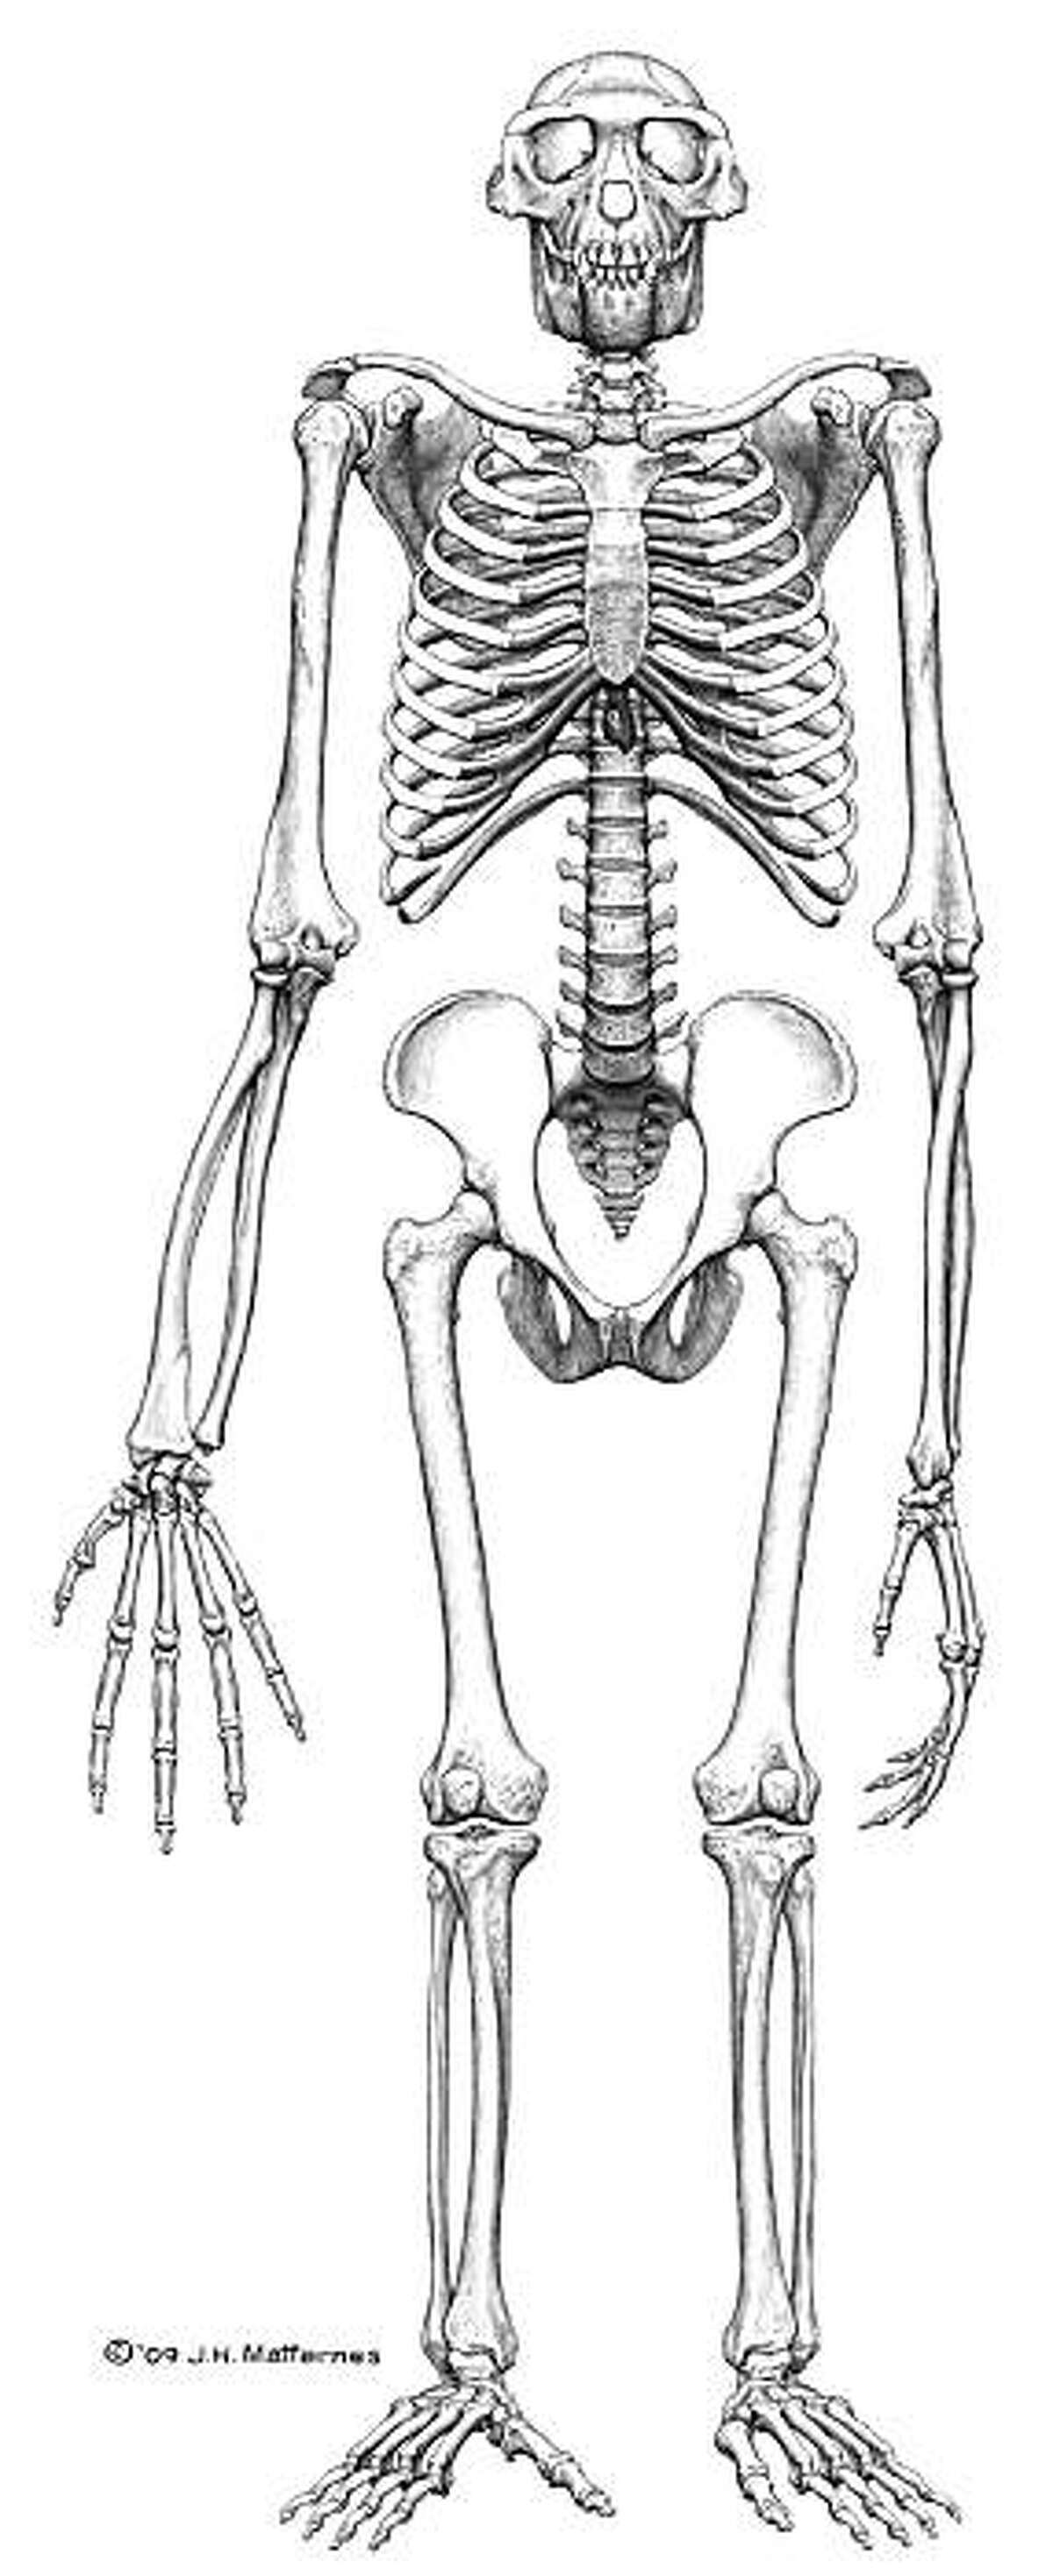 """This image provided by the journal Science shows the reconstructed frontal view of the skeleton """"Ardi."""" The story of humankind is reaching back another million years with the discovery of """"Ardi,"""" a hominid who lived in what is now Ethiopia 4.4 million years ago. (AP Photo/Science, J.H. Matternes)"""